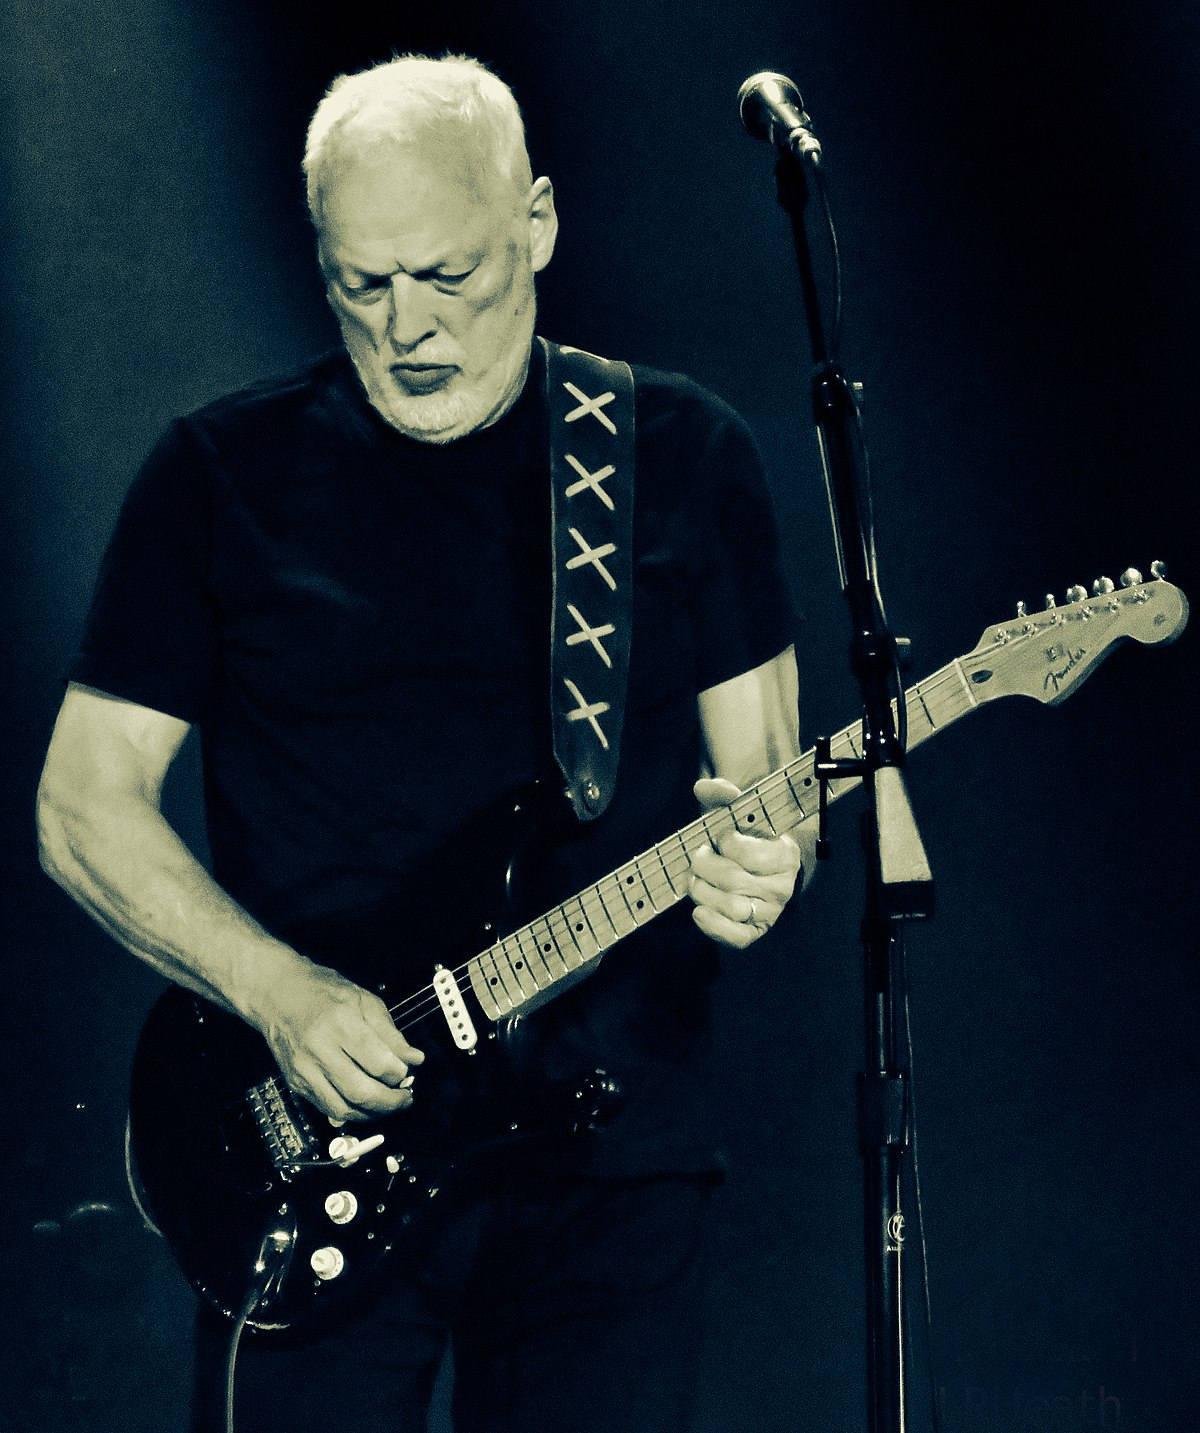 david gilmour wikipedia la enciclopedia libre. Black Bedroom Furniture Sets. Home Design Ideas